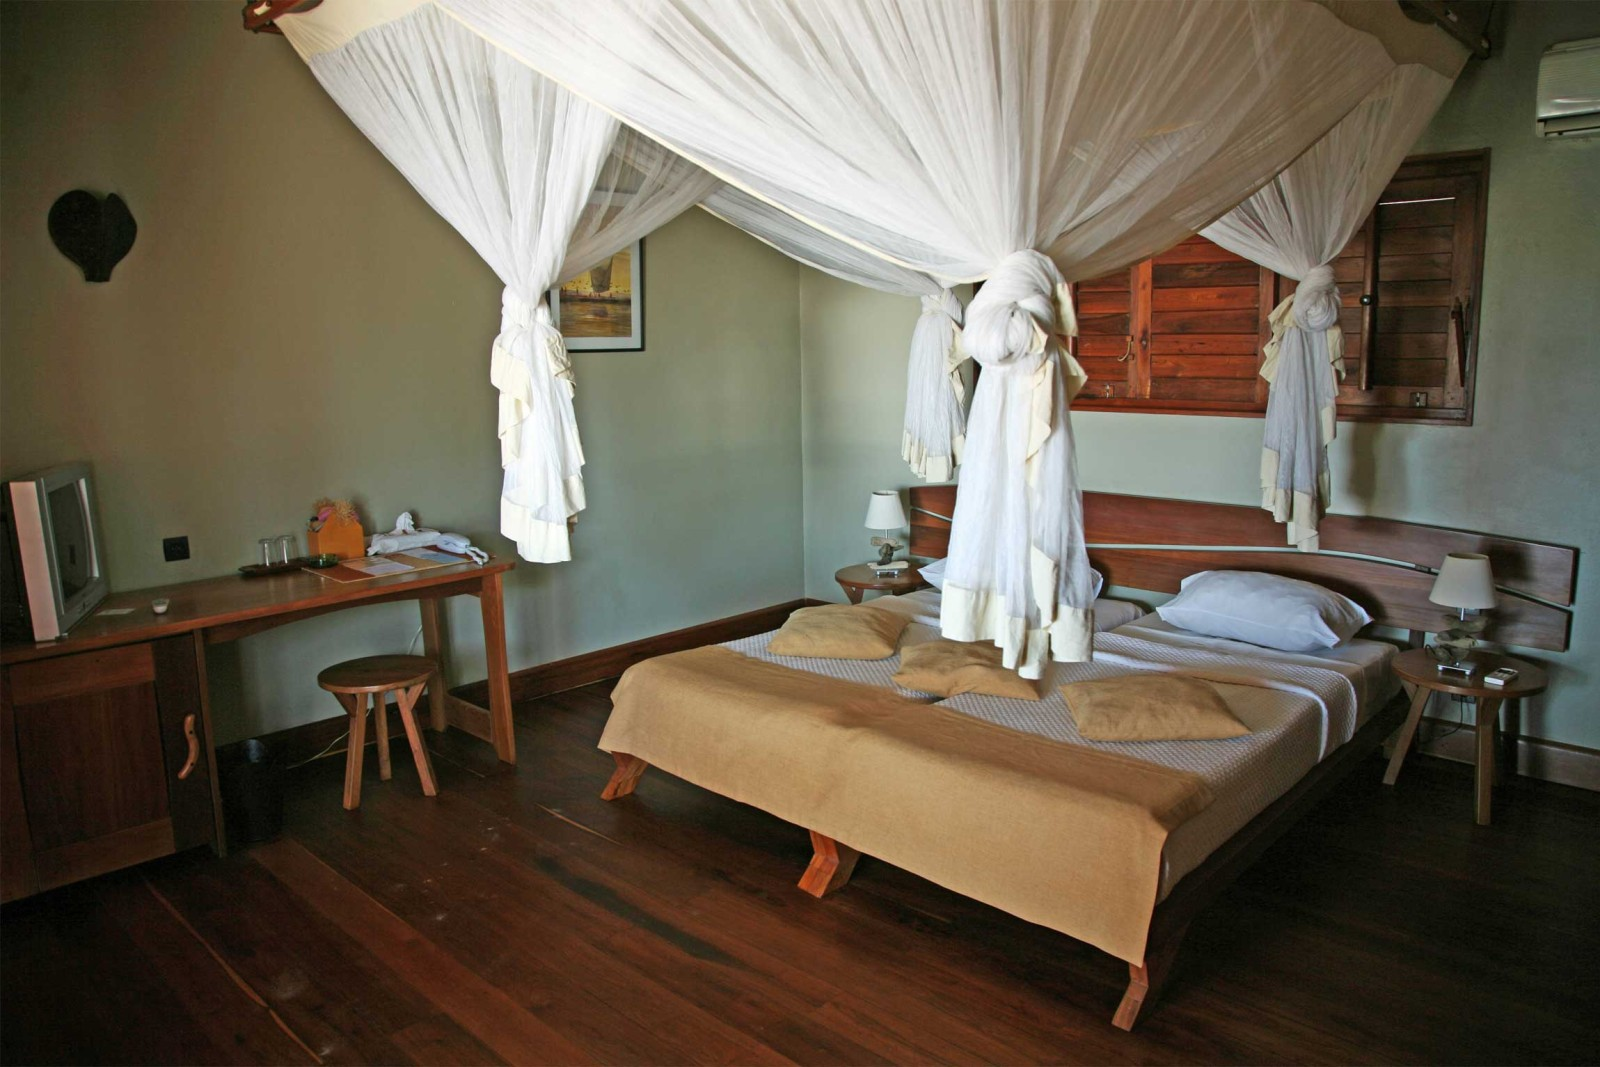 madagascar_accommodation_palisandre-cote-oust-room-jpg